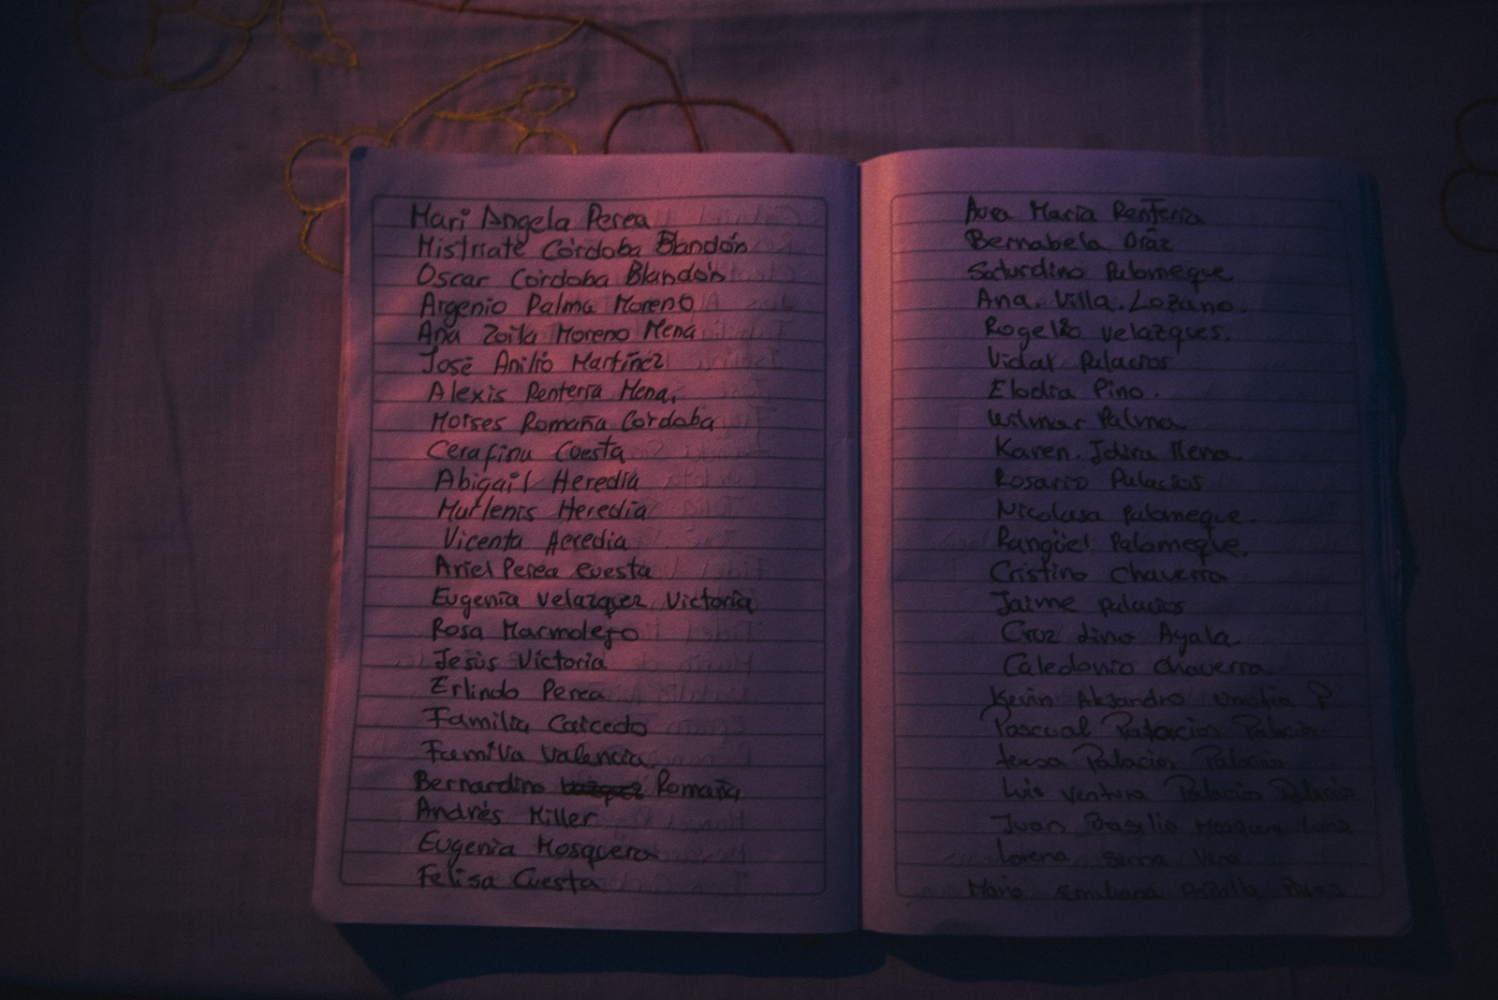 A notebook used during the mass for the remembrance of the dead ones contains names written by friends and relatives of the people who have recently died and of those who died during the 2nd of May massacre.